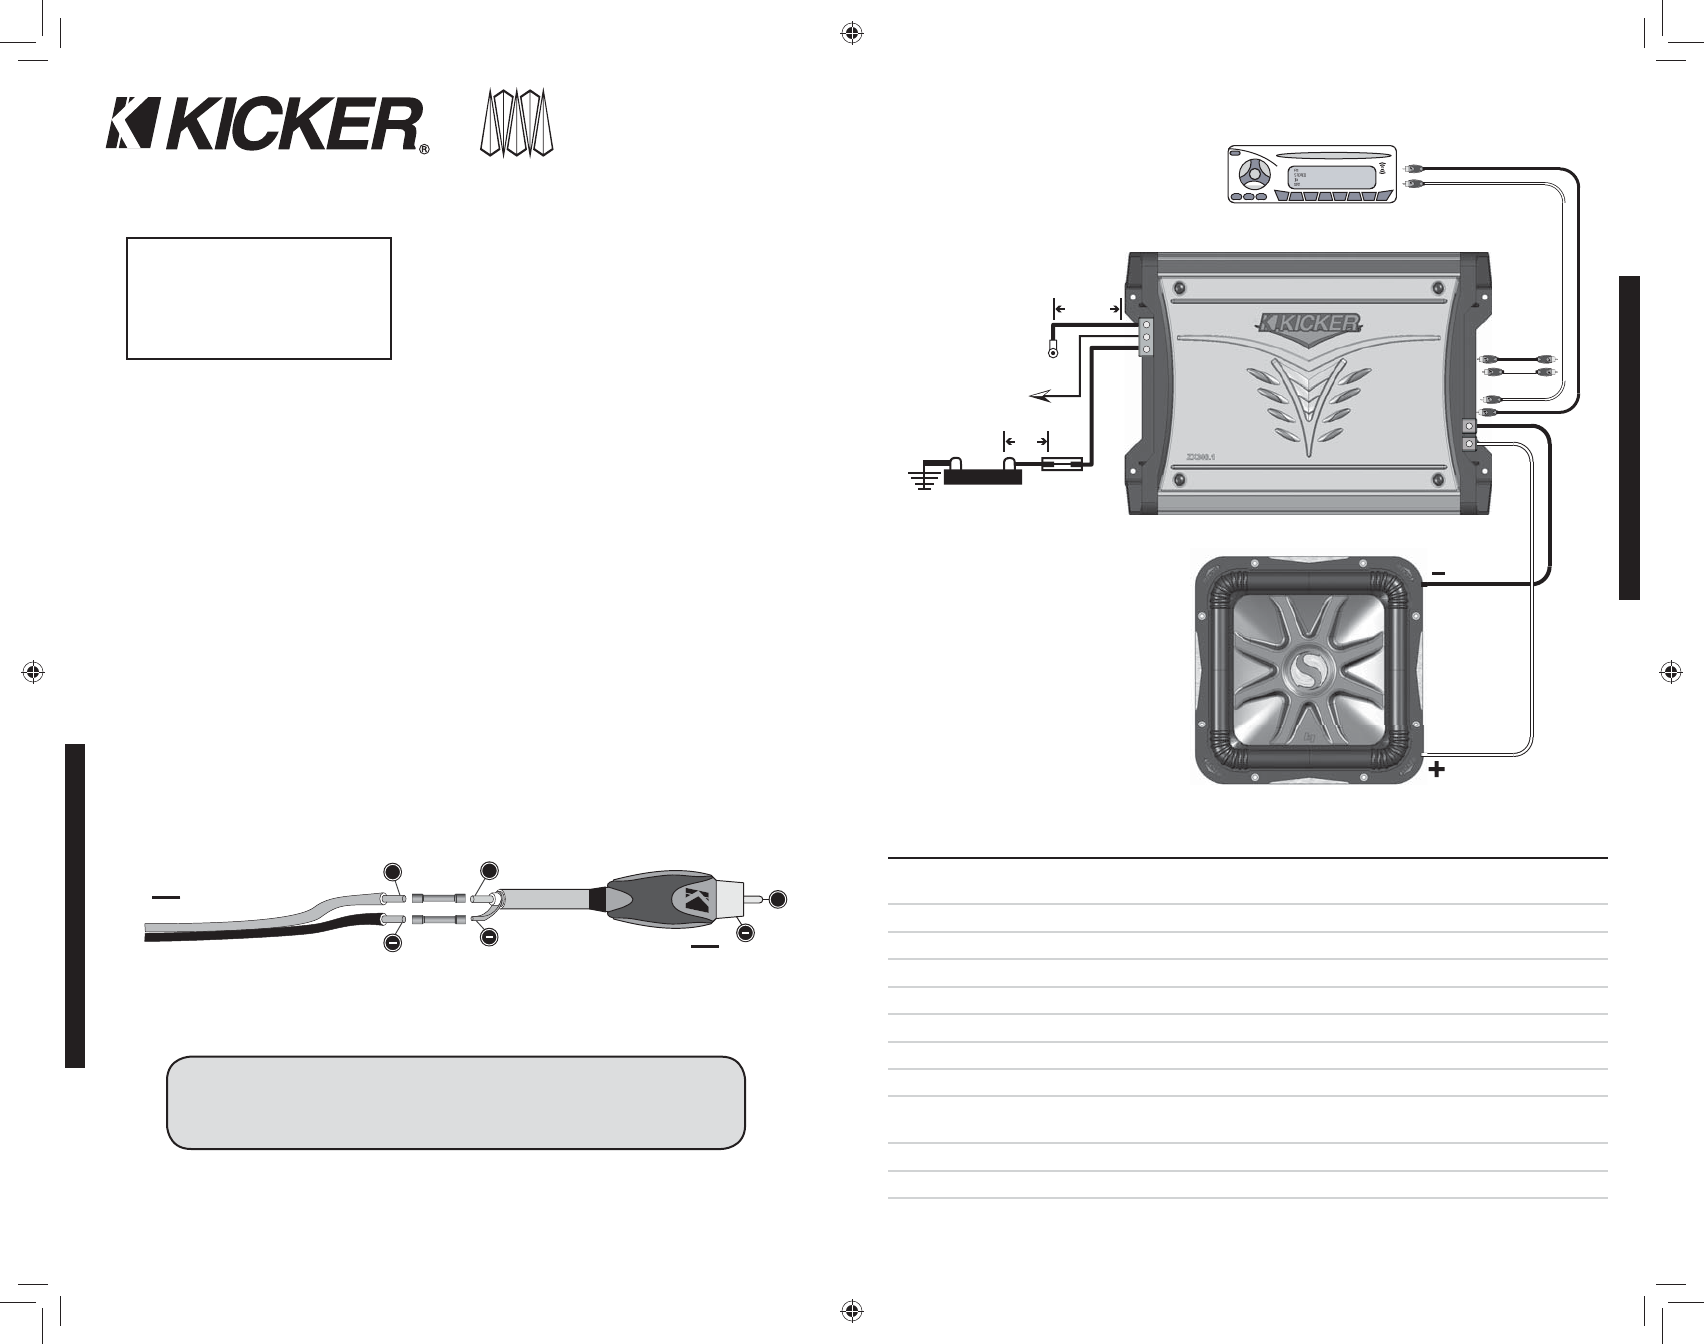 d2035ba5 6160 466c a00c e24ee011772e bg4 page 4 of kicker stereo amplifier zx500 1 user guide Kicker Flat Subwoofers at nearapp.co